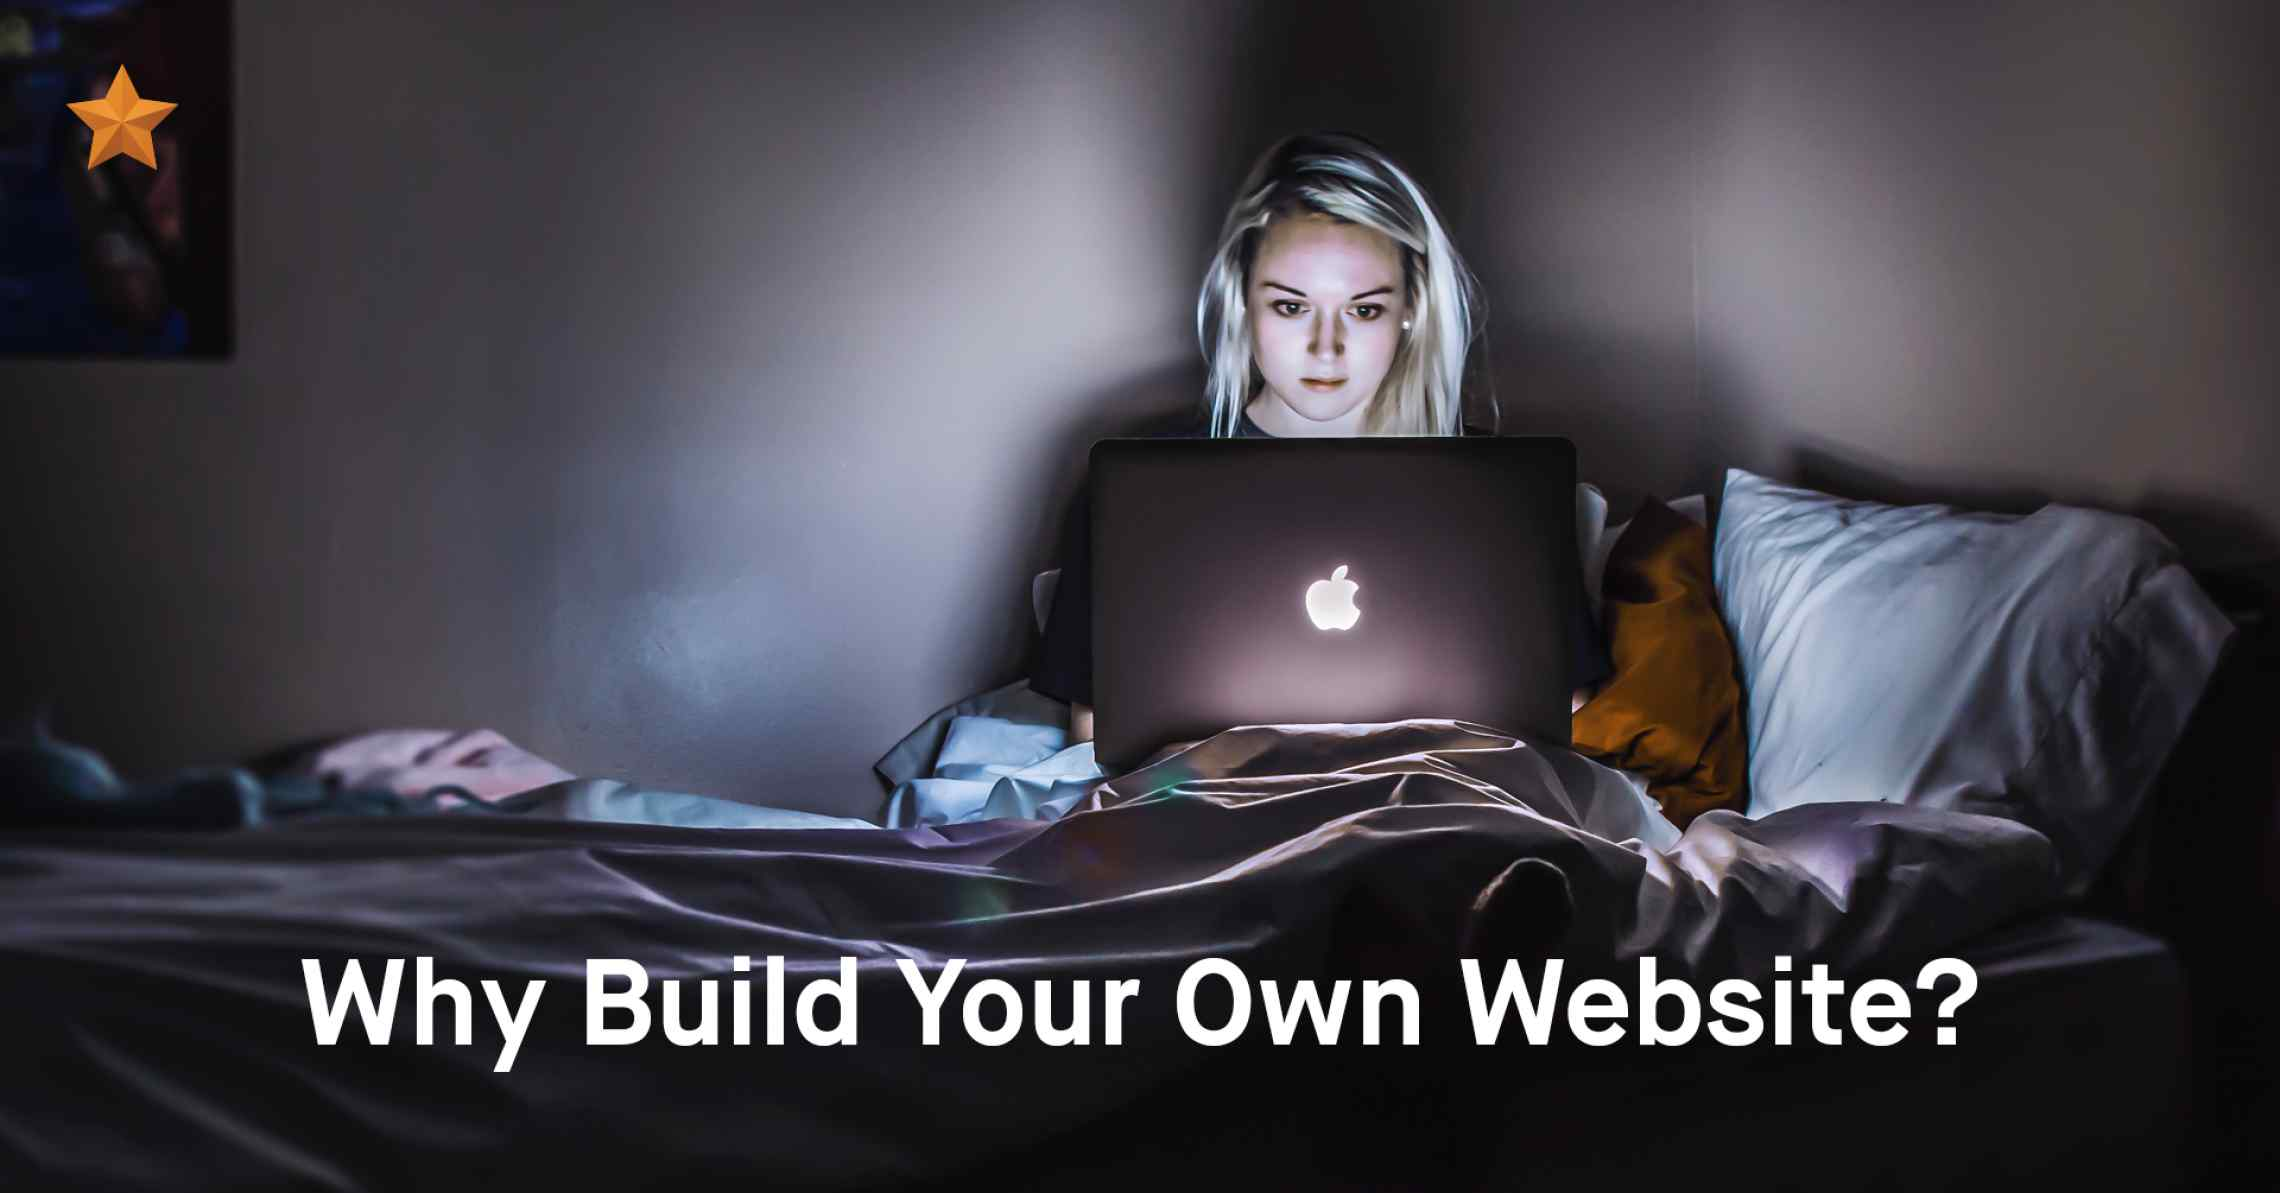 8 Reasons Why You Should - Or Shouldn't - Build Your Own Website